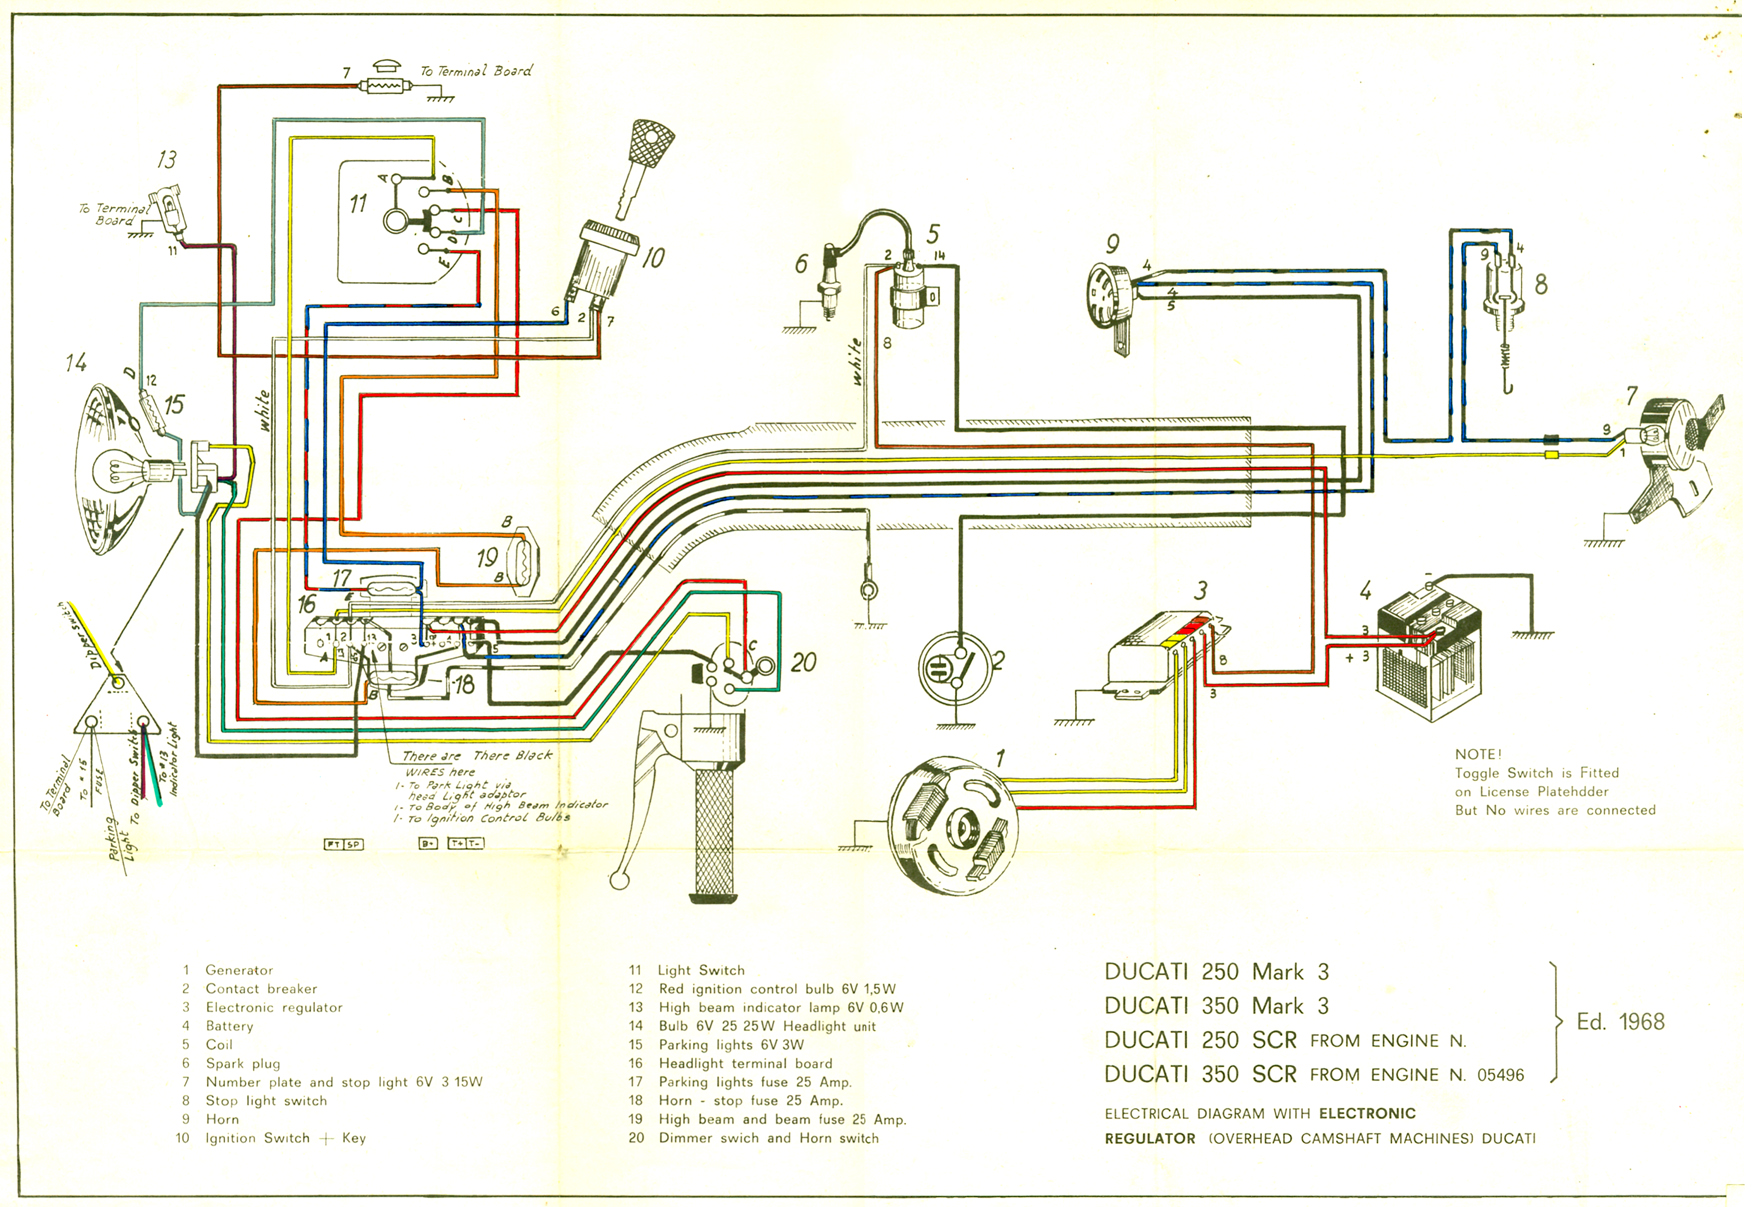 hight resolution of diagrama honda xl250 source astounding 1974 honda xl250 wiring diagram ideas best image wiring 1971 honda xl 250 1974 honda